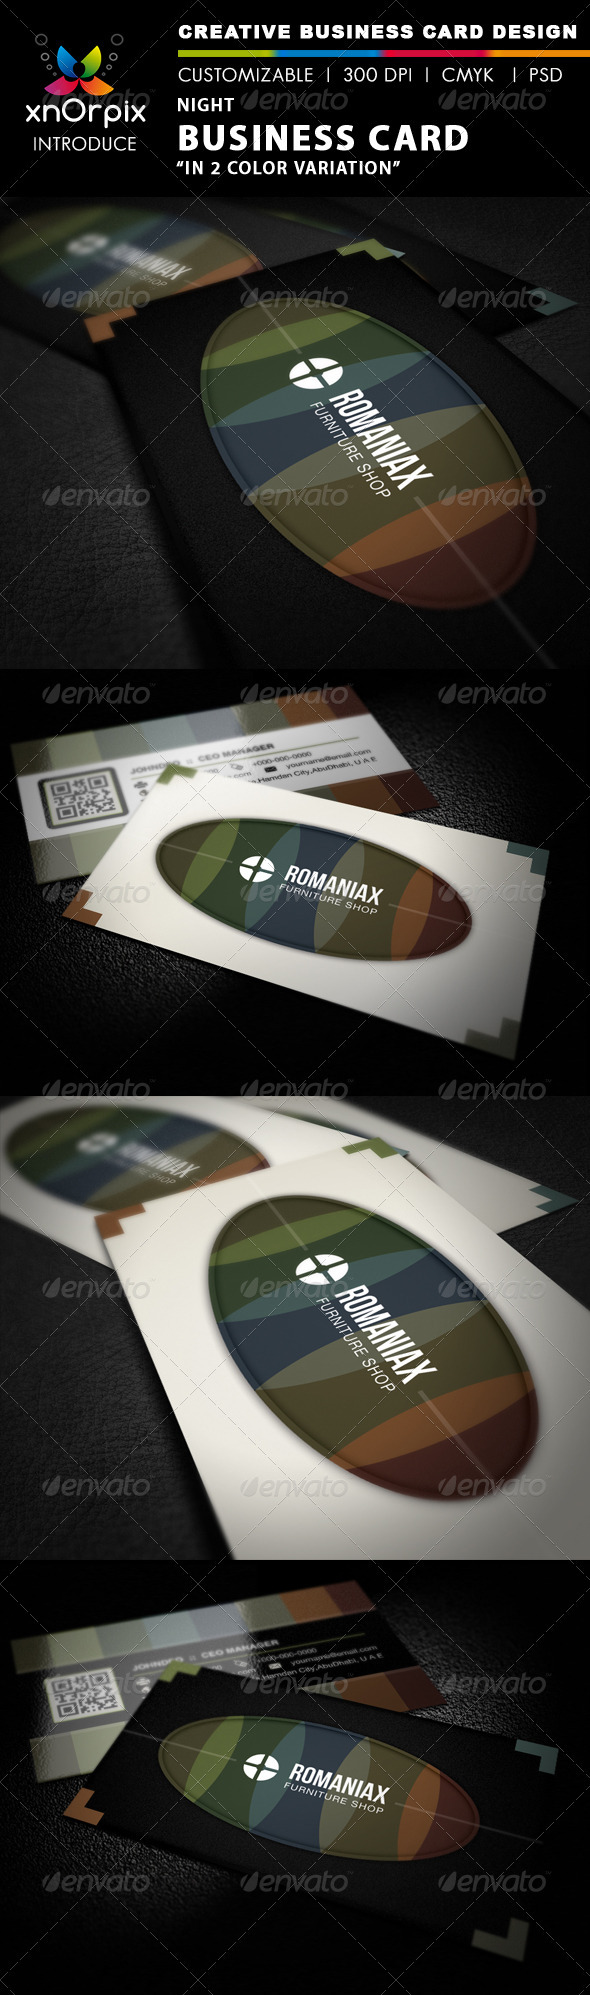 Night Business Card - Corporate Business Cards